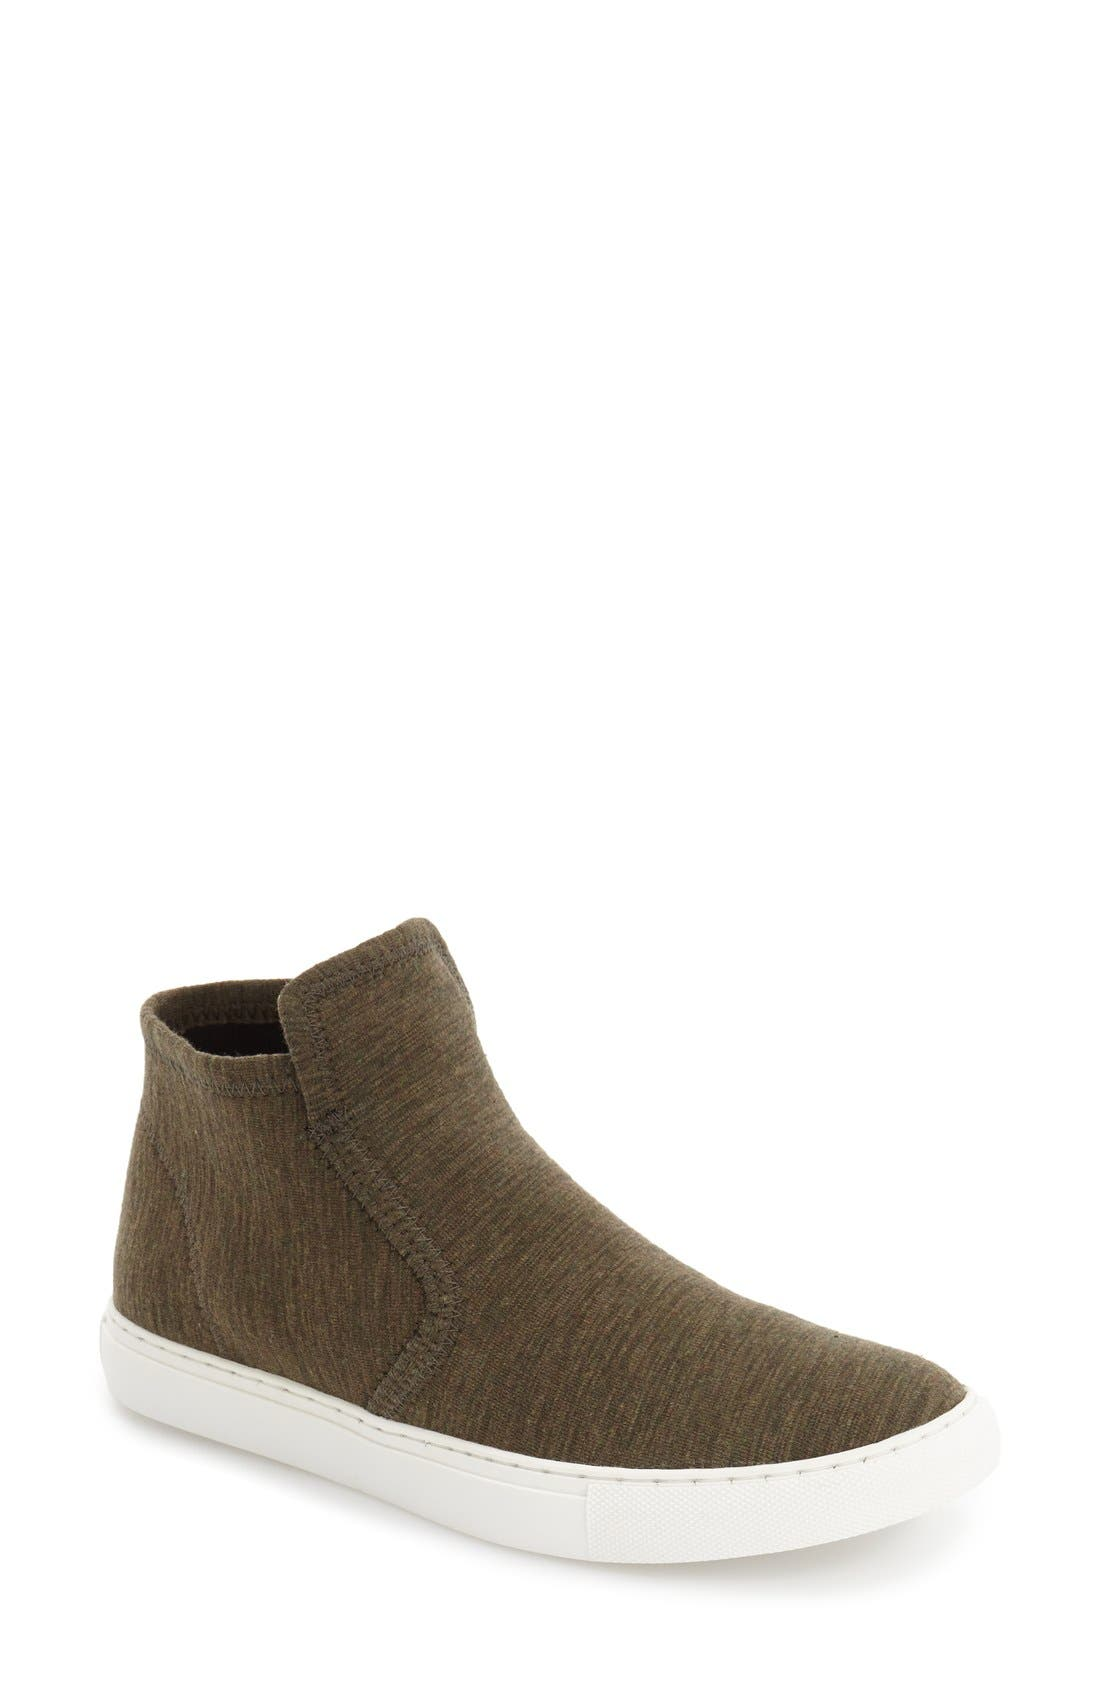 Main Image - Reaction Kenneth Cole 'Kam-Ping' High Top Sneaker (Women)